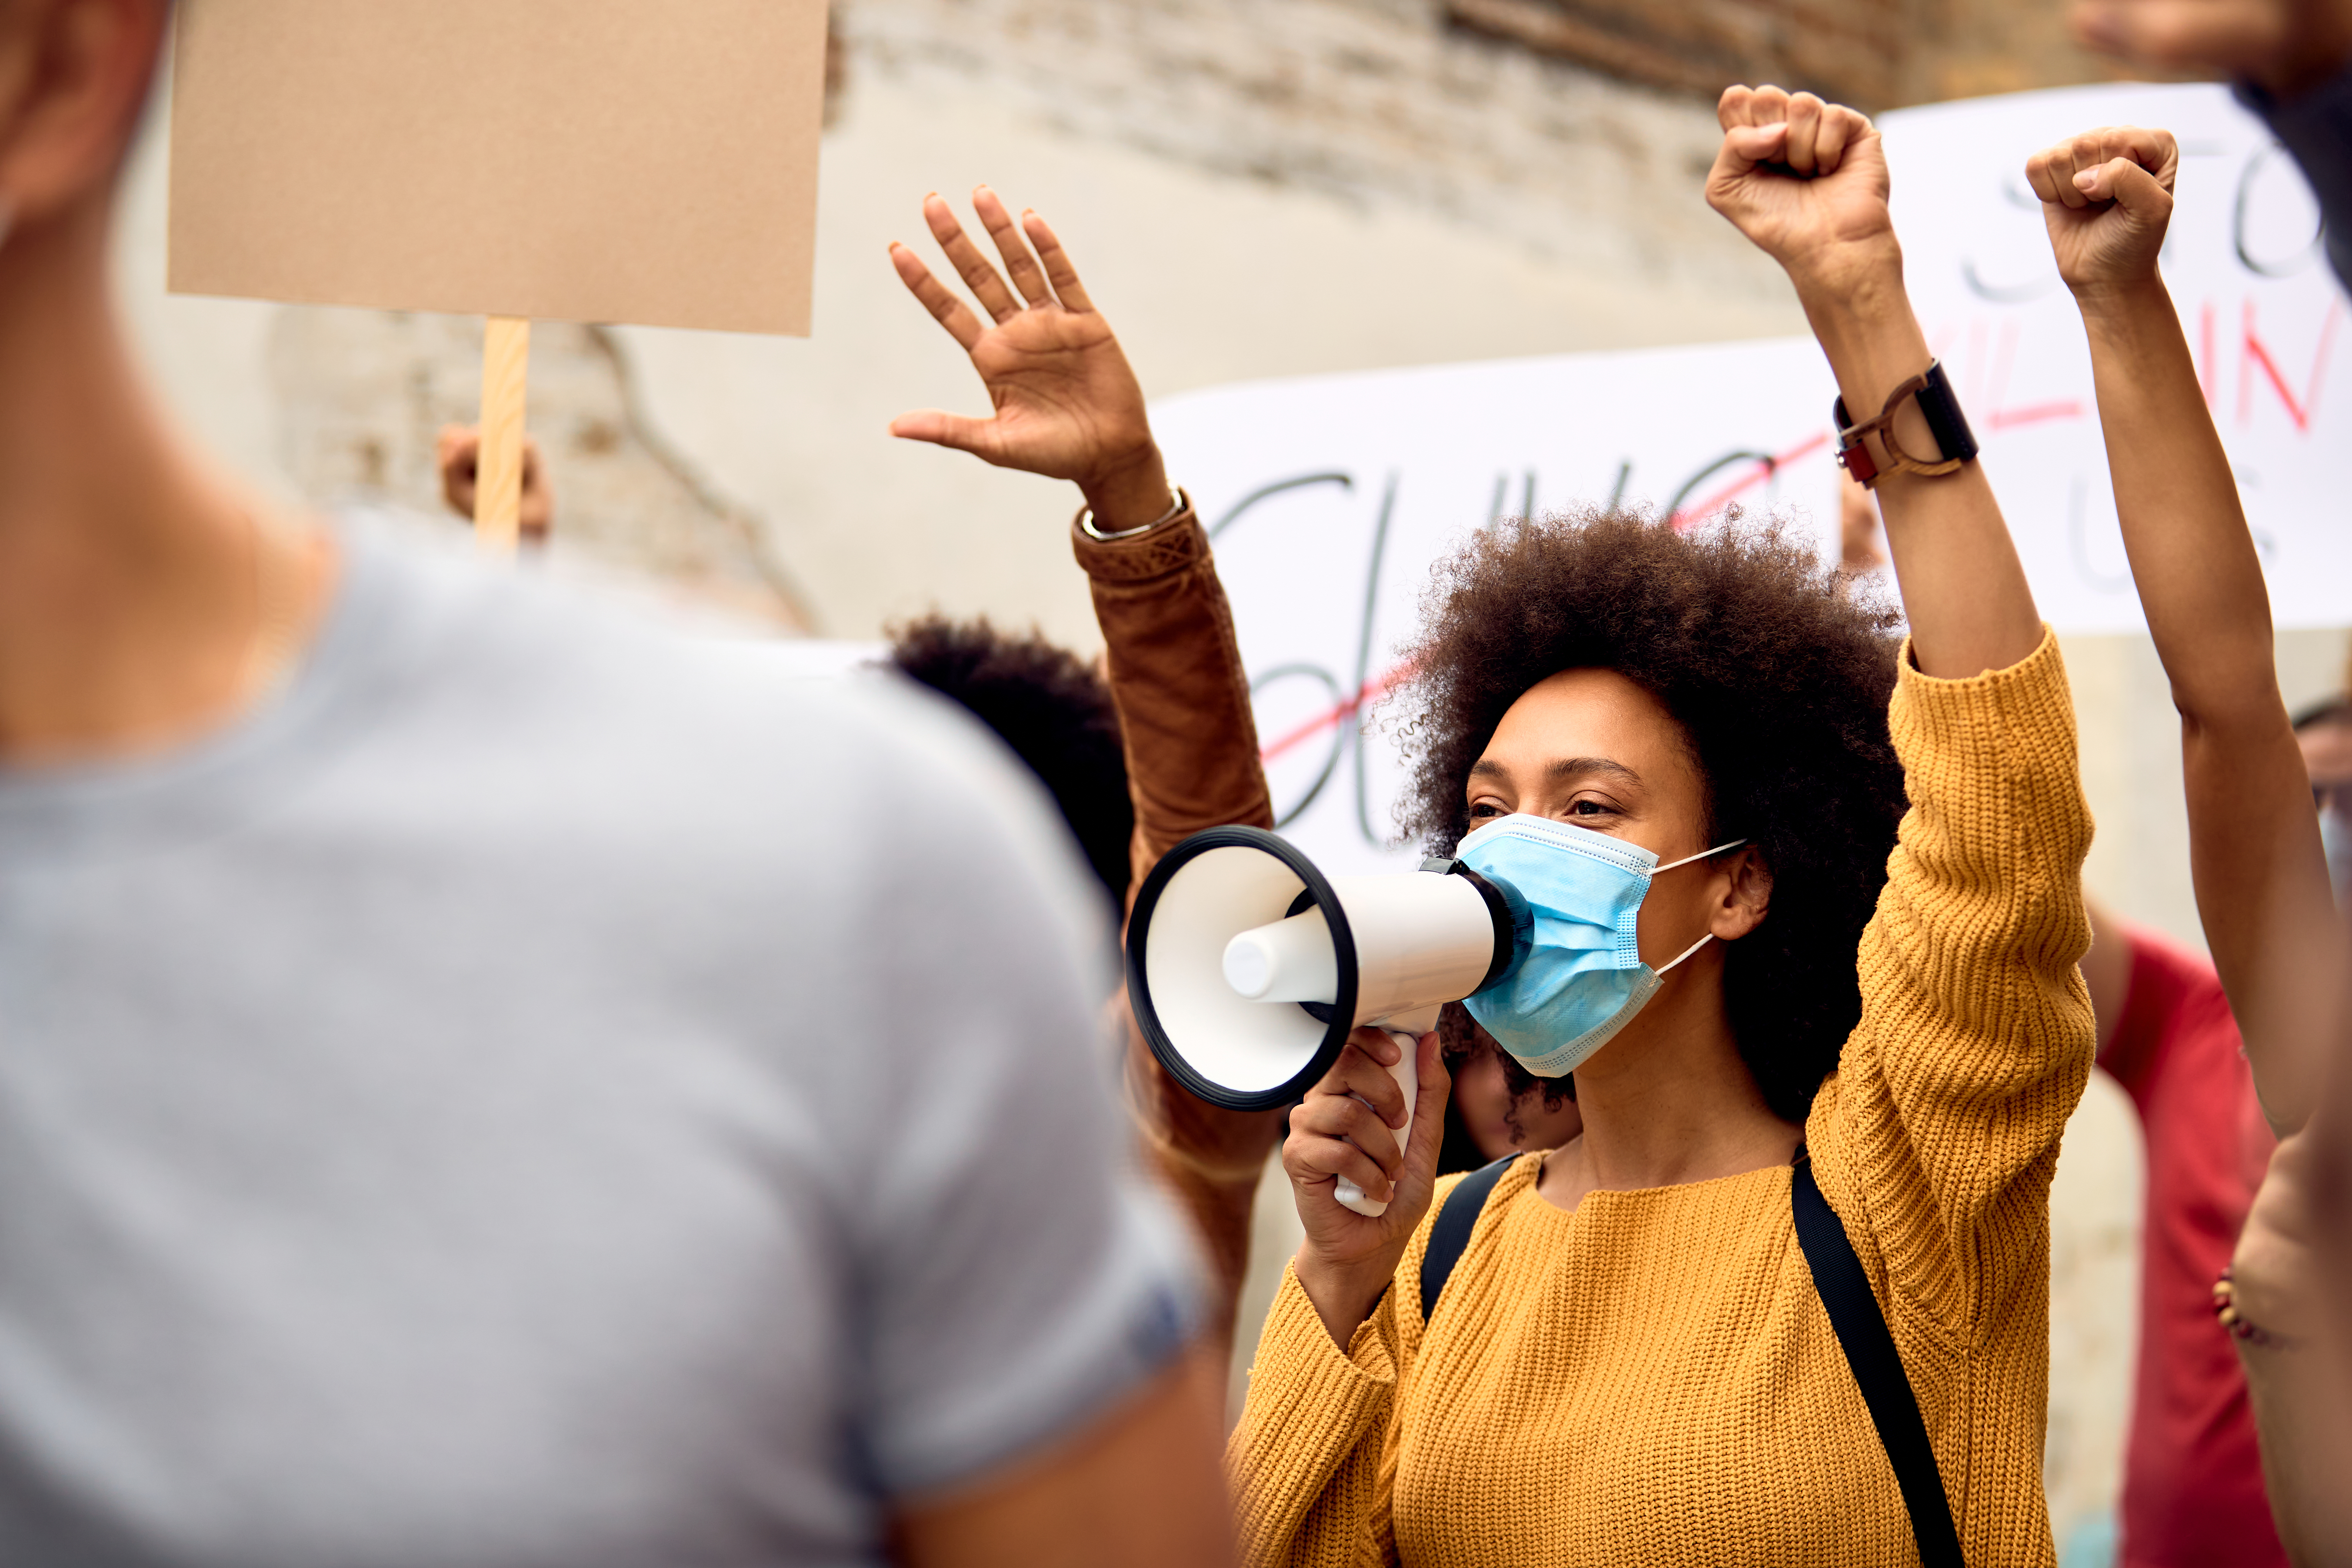 Young black woman wearing protective face mask while shouting through megaphone on anti-racism solidarity protest.